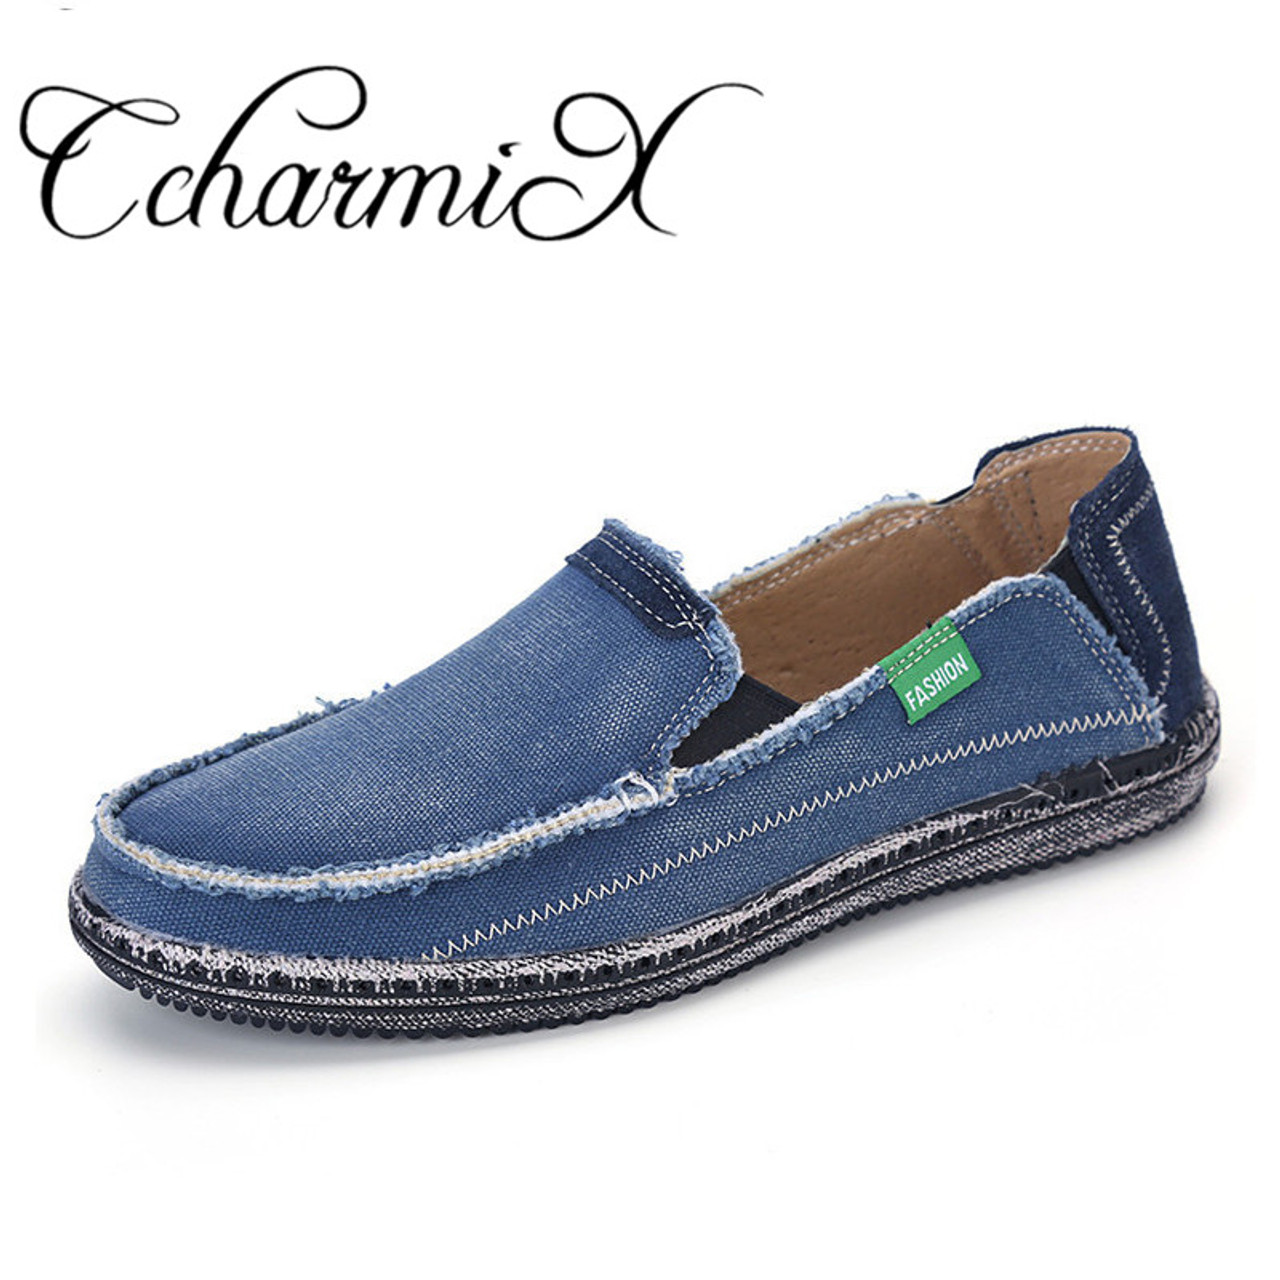 2bc8be096da5b9 CcharmiX Brand New Mens Jeans Canvas Casual Shoes Males Breathable High  Quality Fashion Shoes Men Fashion ...